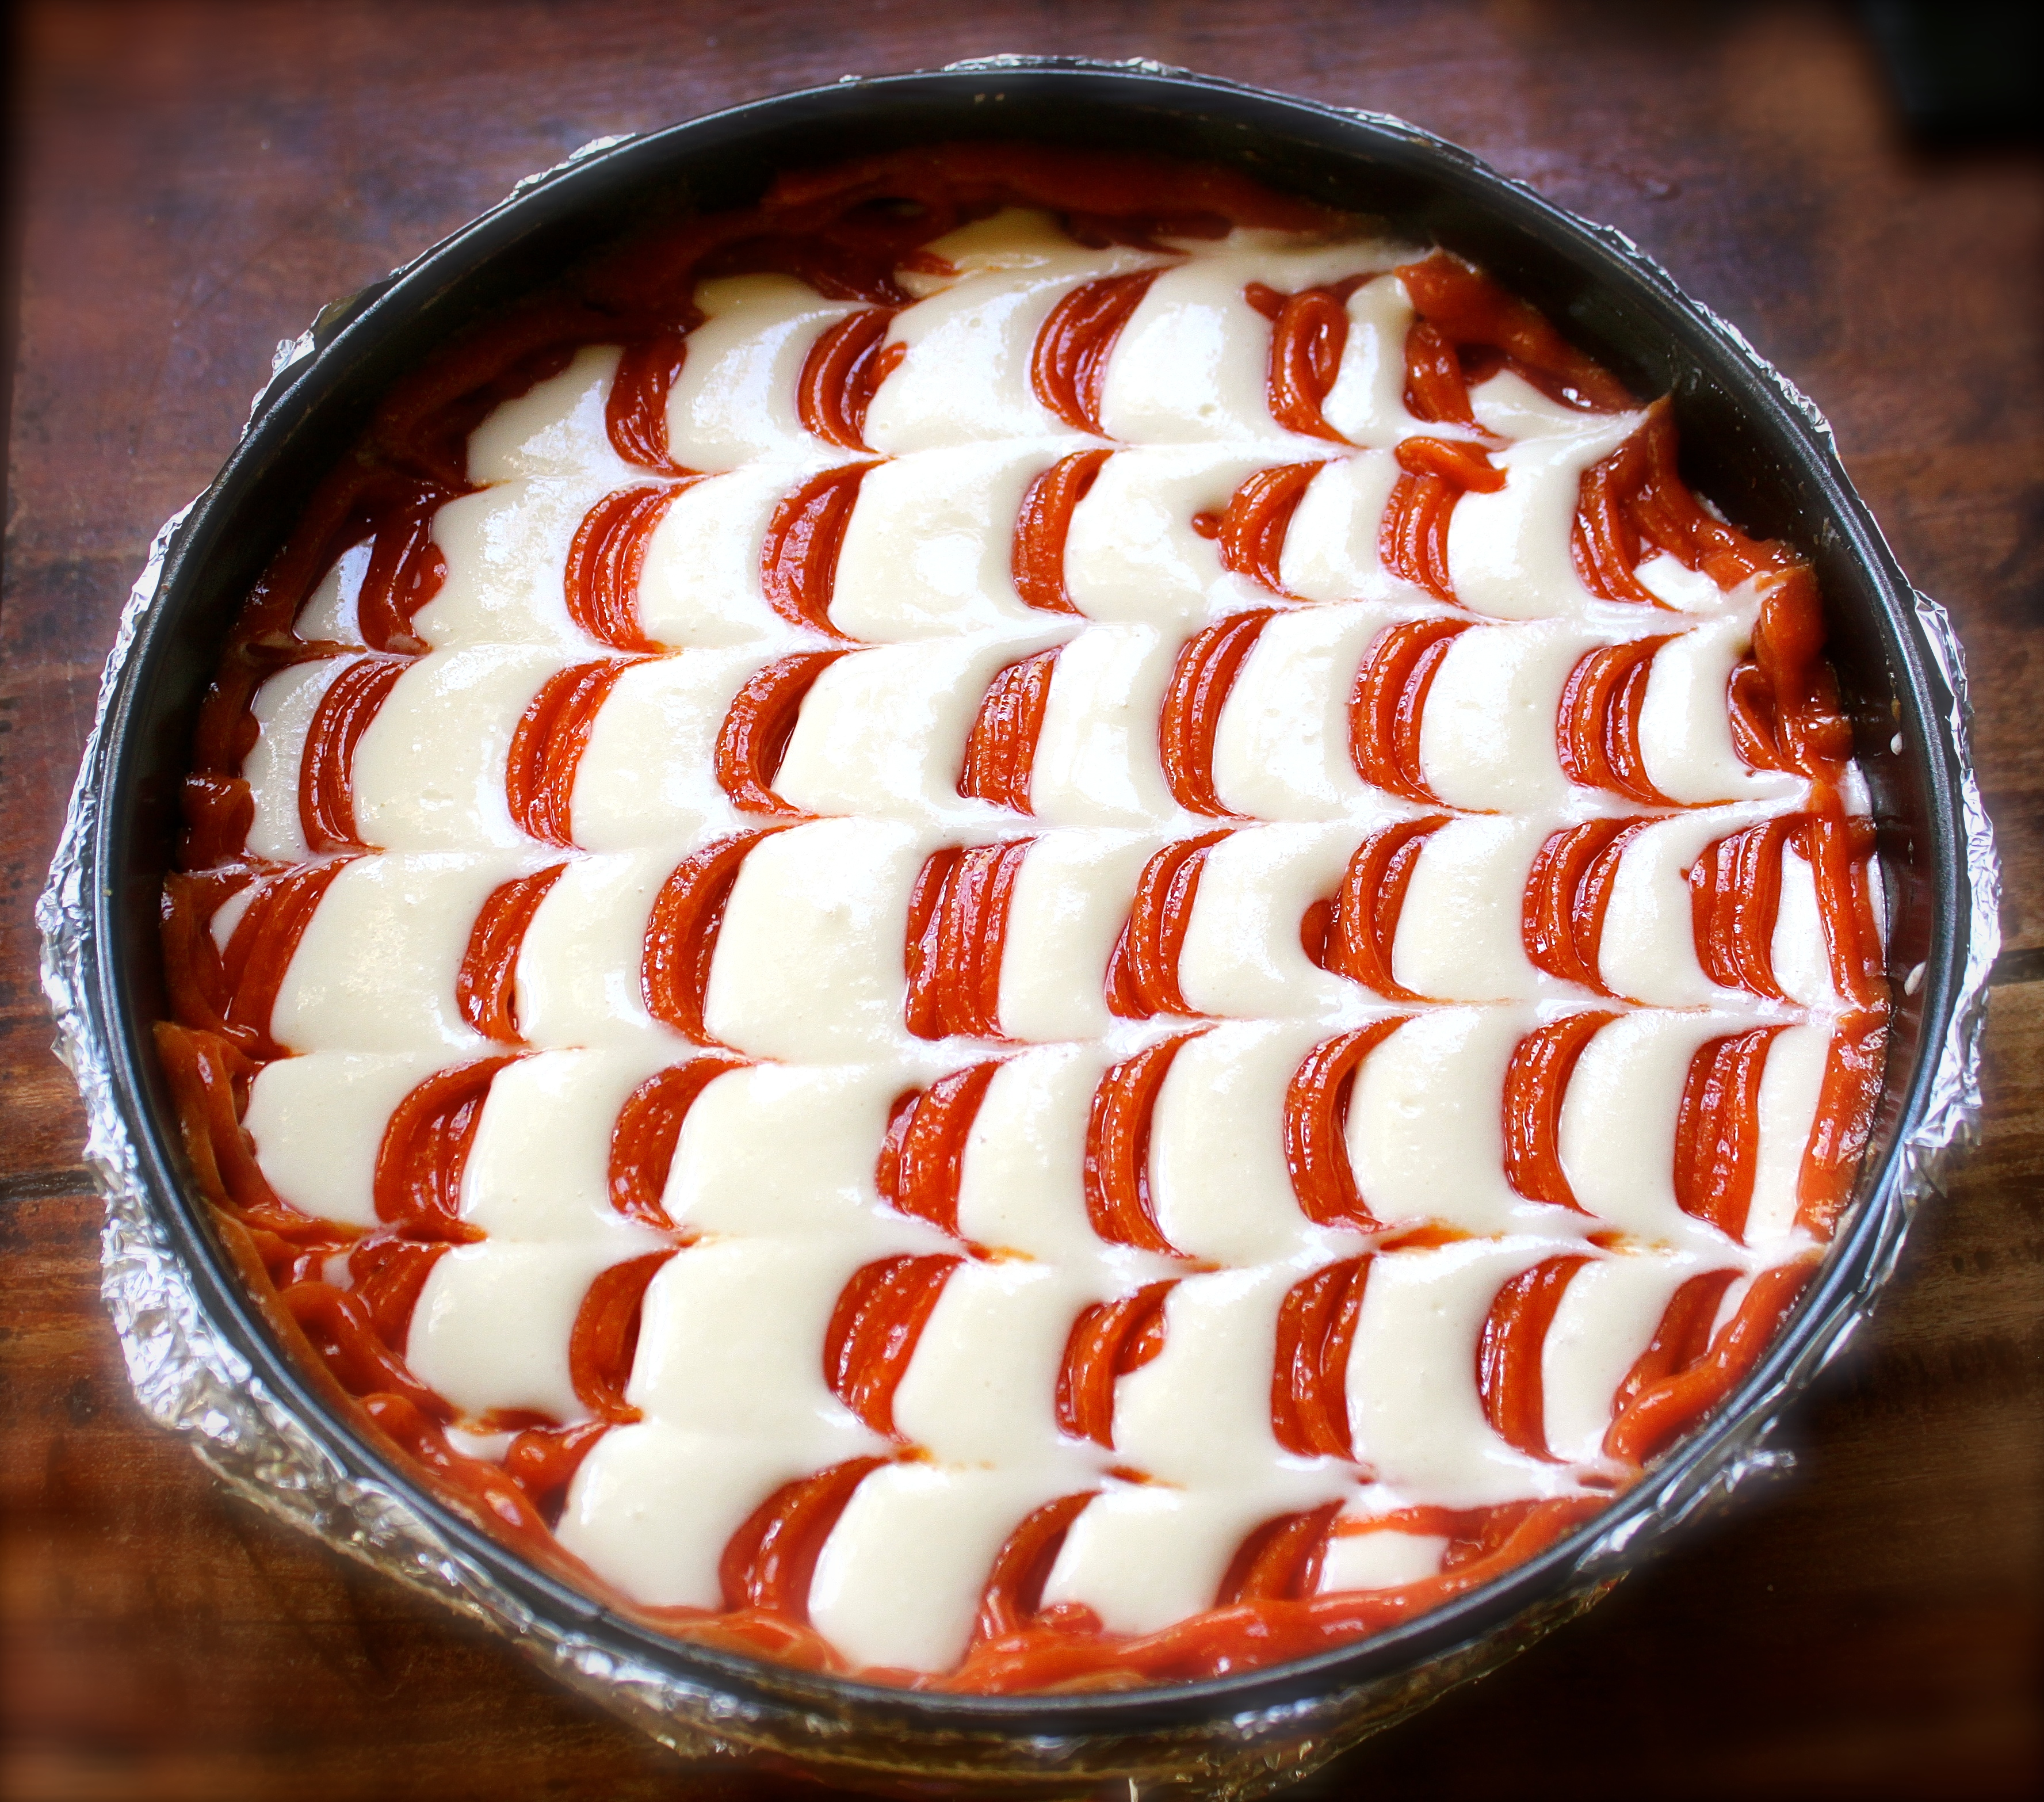 The guava cheesecake ready for baking.